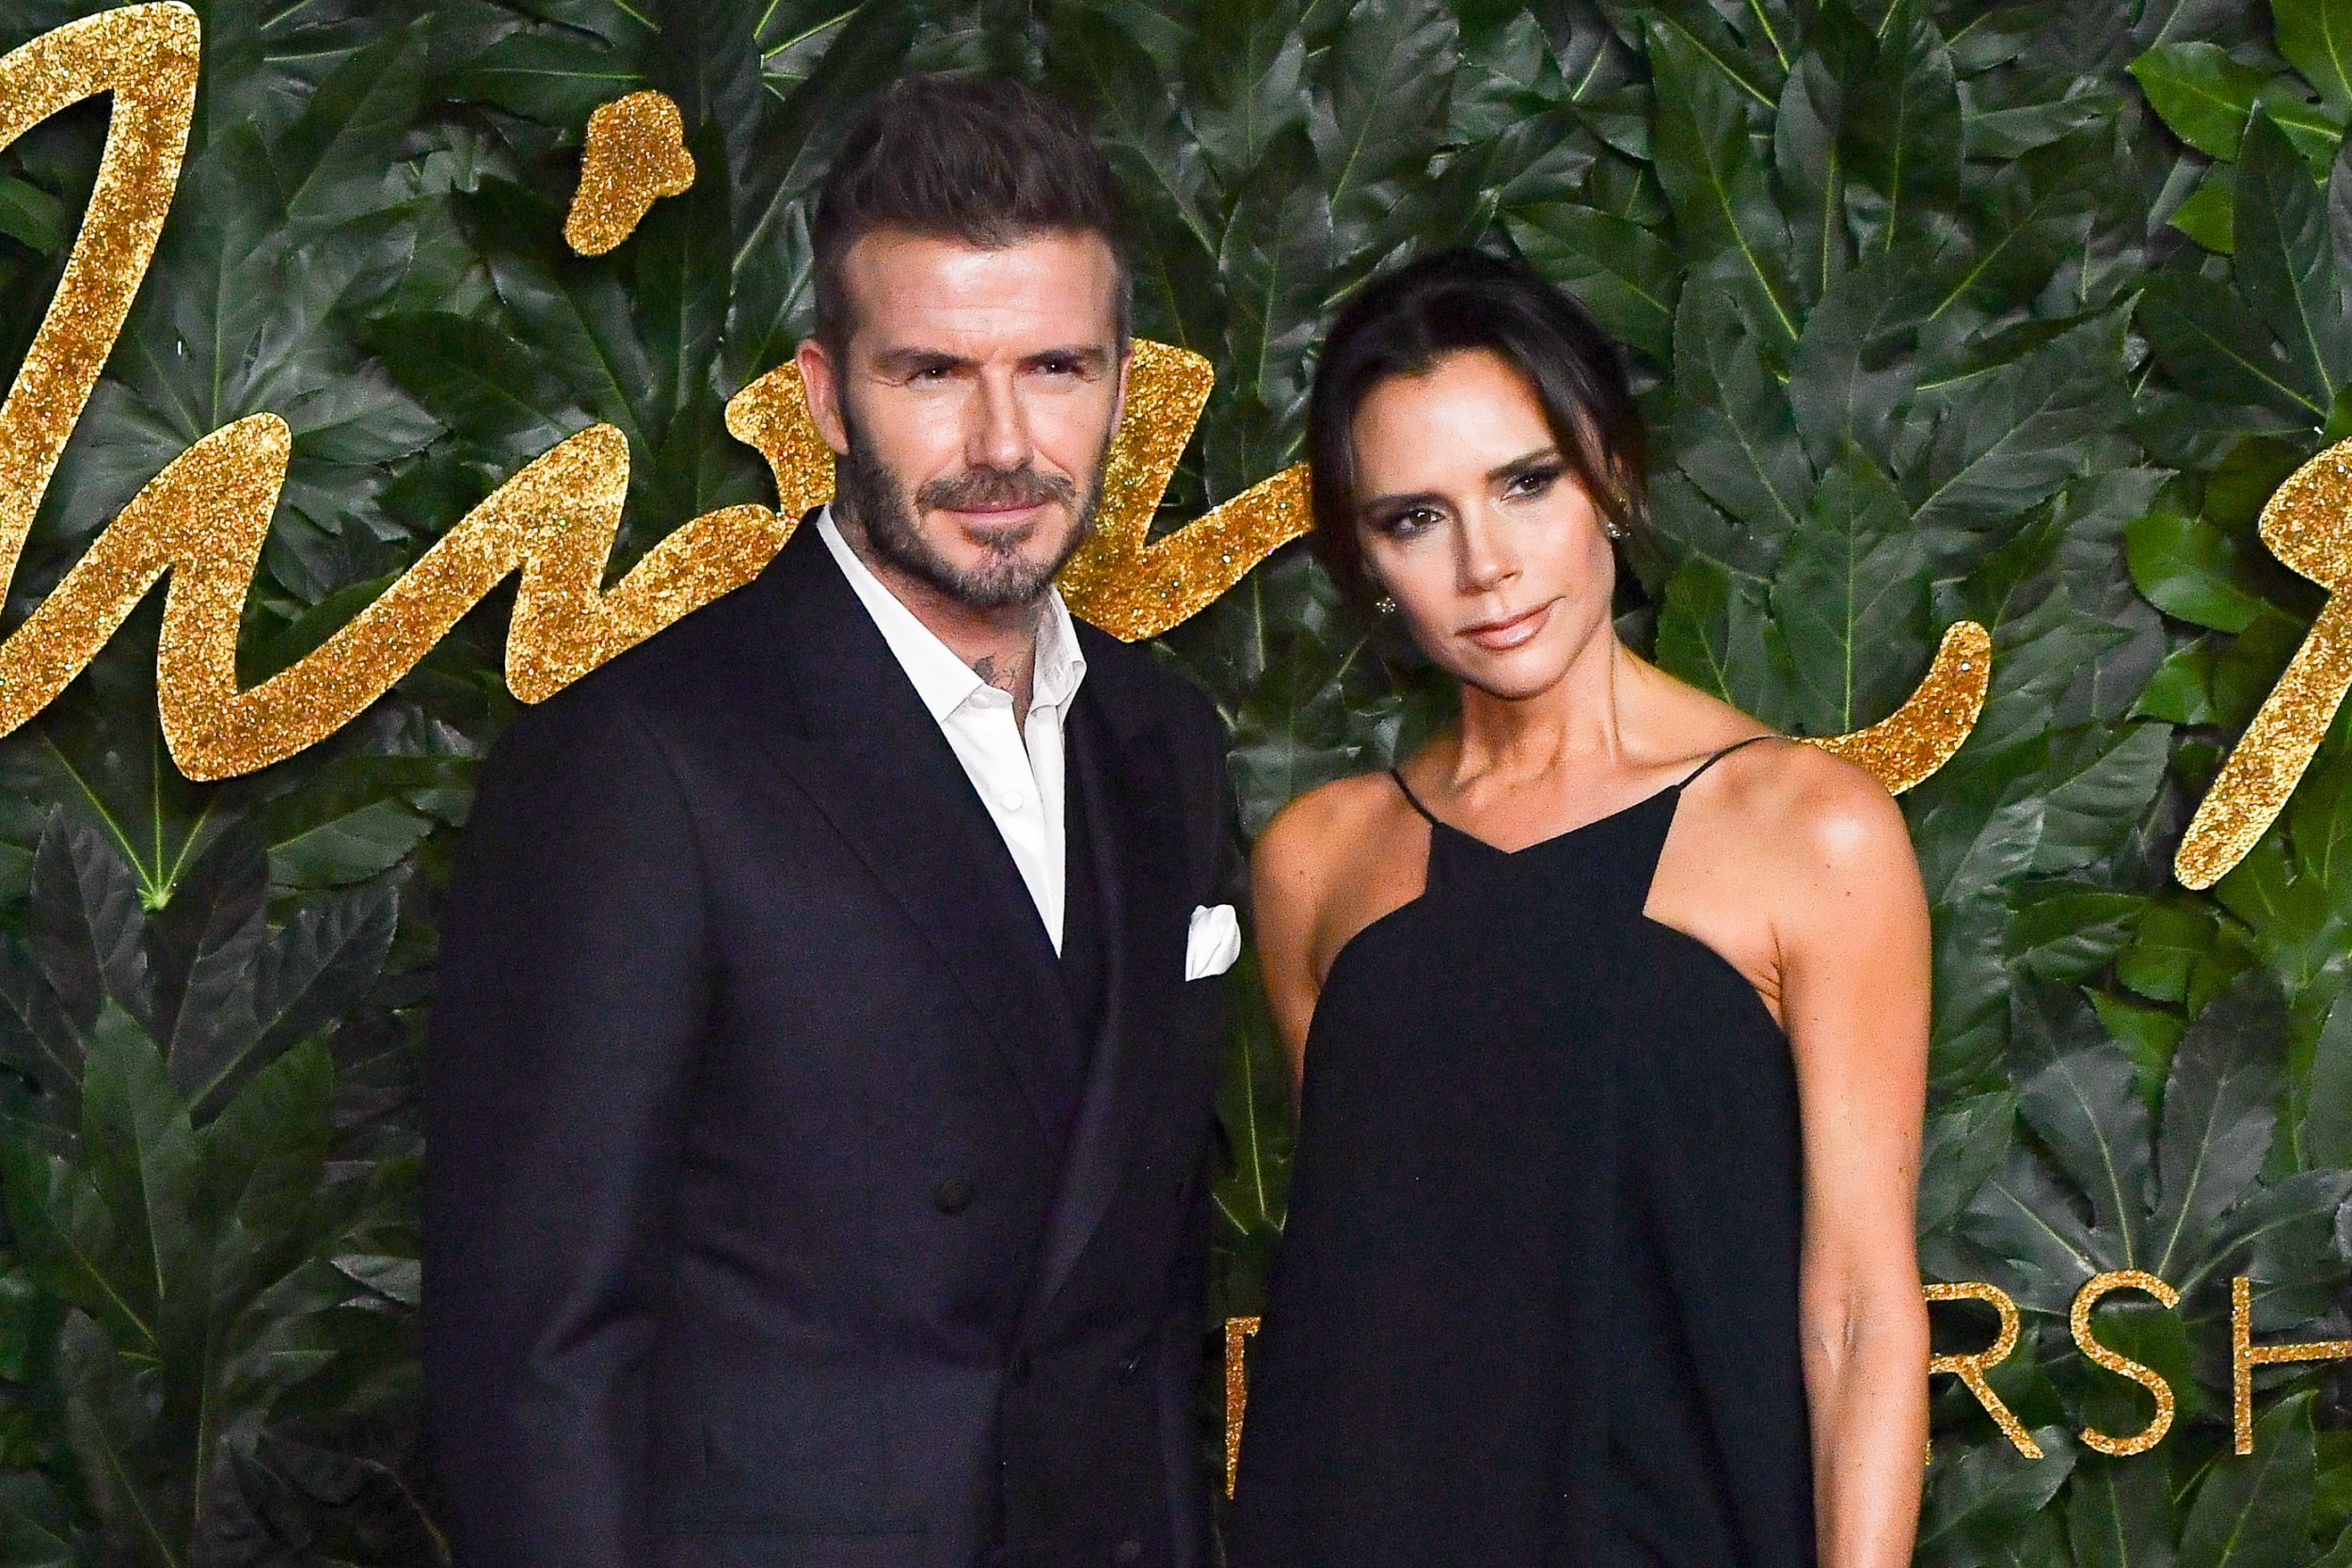 LONDON, ENGLAND - DECEMBER 10: David Beckham and Victoria Beckham attend the Fashion Awards 2018 in partnership with Swarovski at Royal Albert Hall on December 10, 2018 in London, England. (Photo by Stephane Cardinale - Corbis/Corbis via Getty Images)